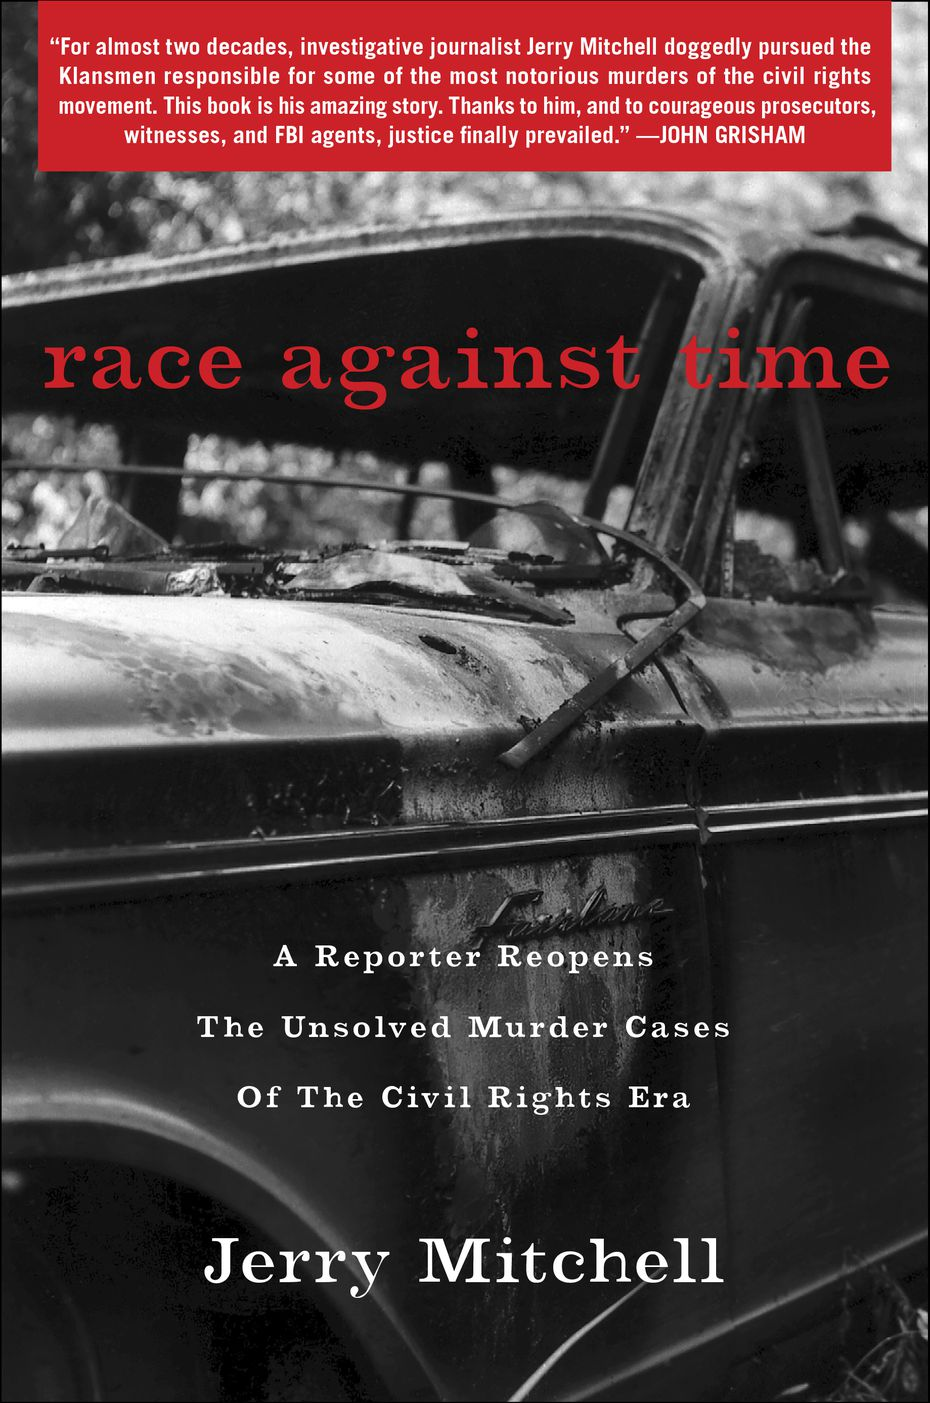 """Race Against Time: A Reporter Reopens the Unsolved Murder Cases of the Civil Rights Era"" reveals a stunning degree of evil and corruption: Police officers who were Klansmen, witnesses who were threatened, jurors who were coerced."